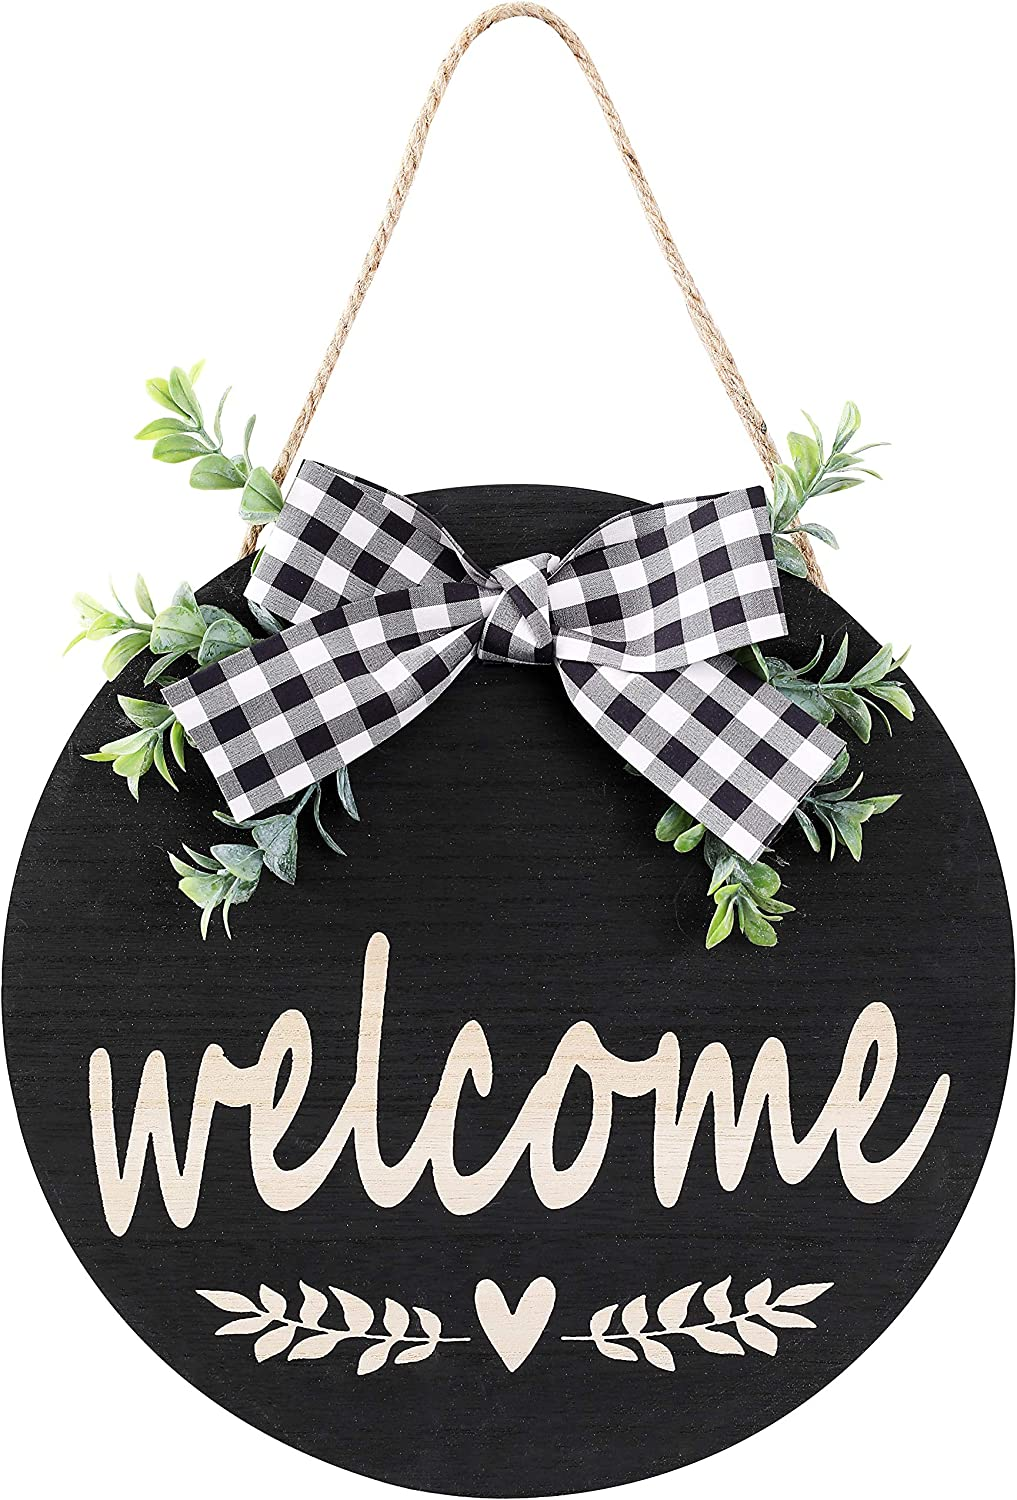 Welcome Sign Rustic Front Door Decor Round Wood Sign Hanging Welcome Farmhouse Porch Decoration Spring Hello Door Sign Home Outdoor Wall Decor (Black)